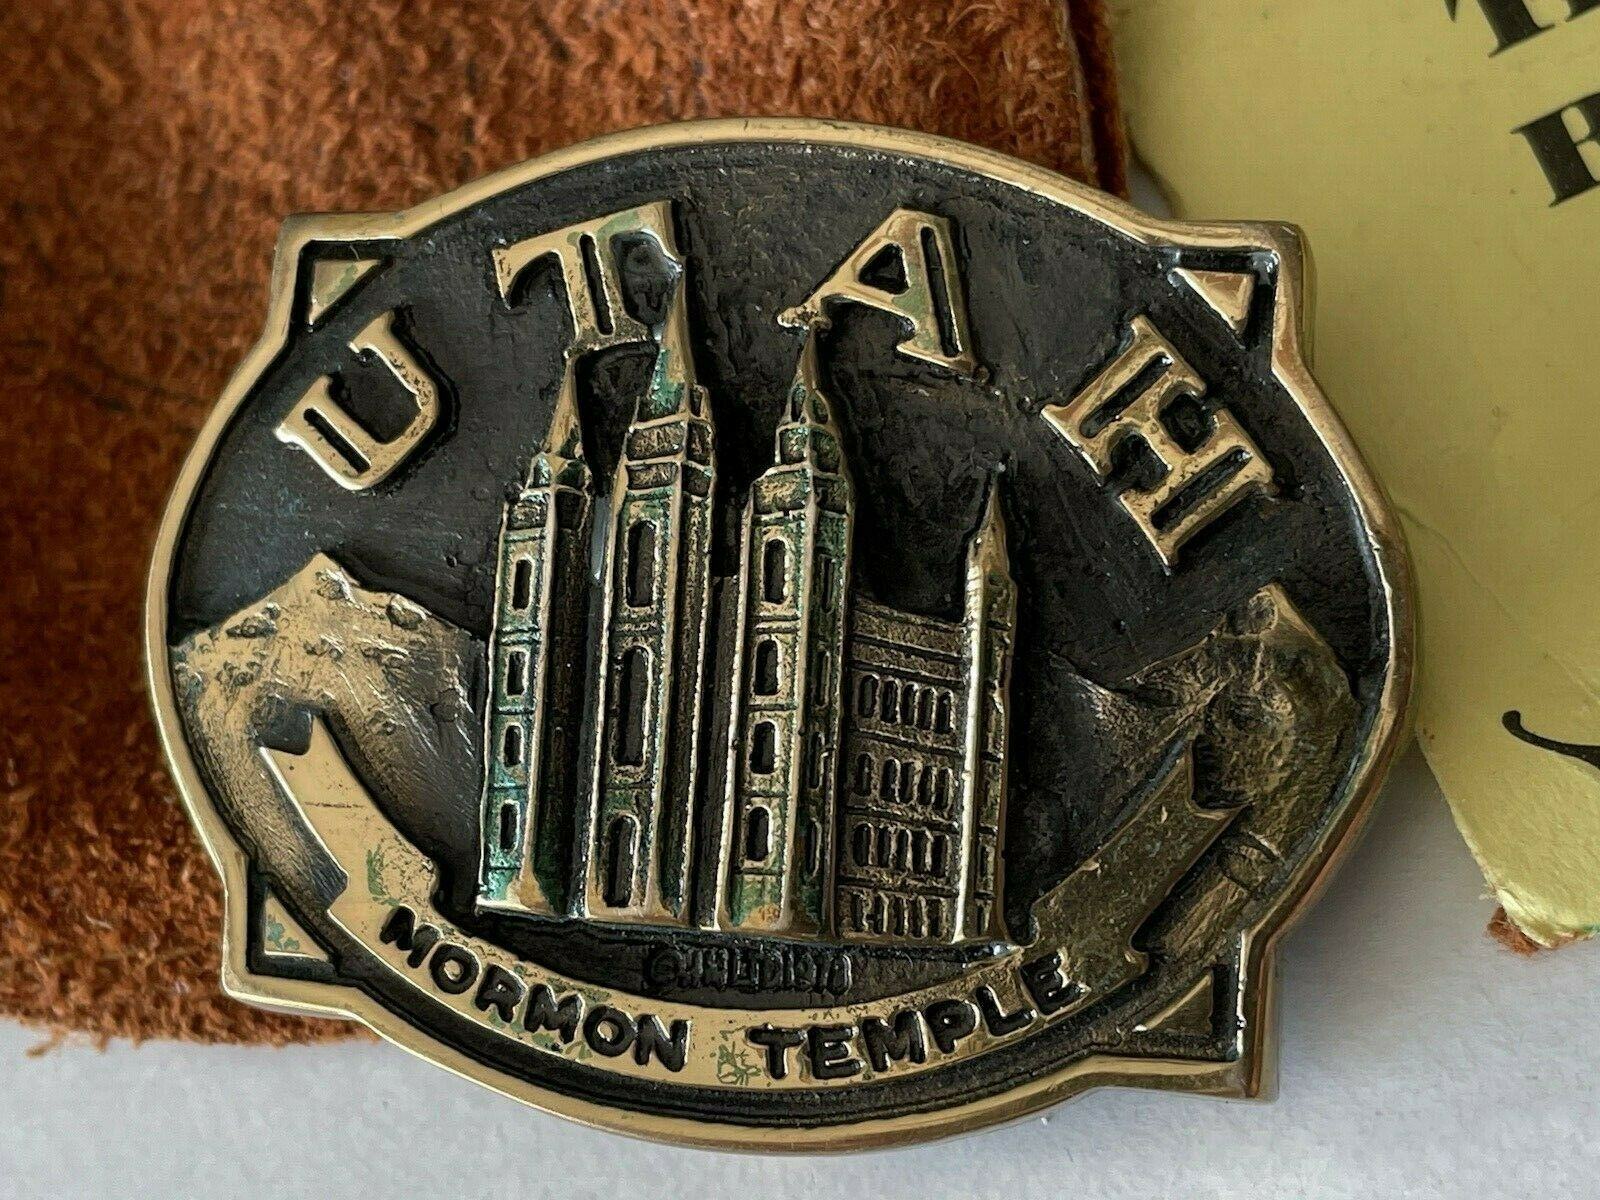 Vintage 1970's The state of Utah Mormon Temple Belt Buckle Registered Collection